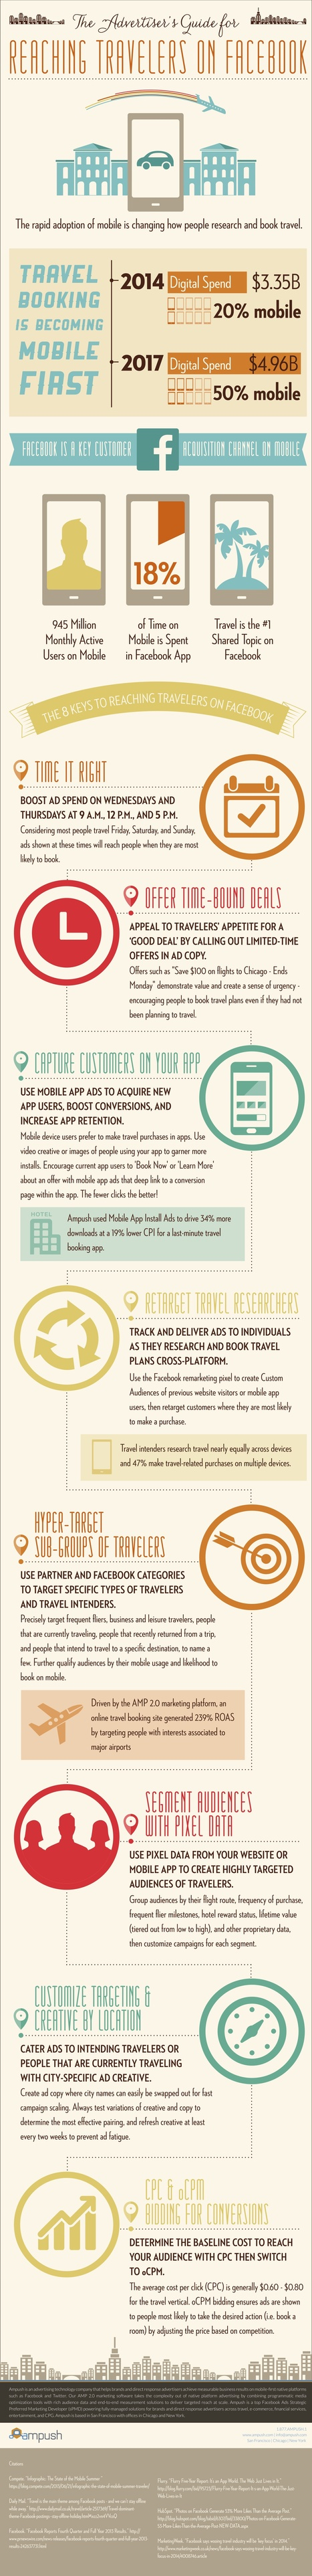 Infographic: How to reach travelers on Facebook   MarketingHits   Scoop.it